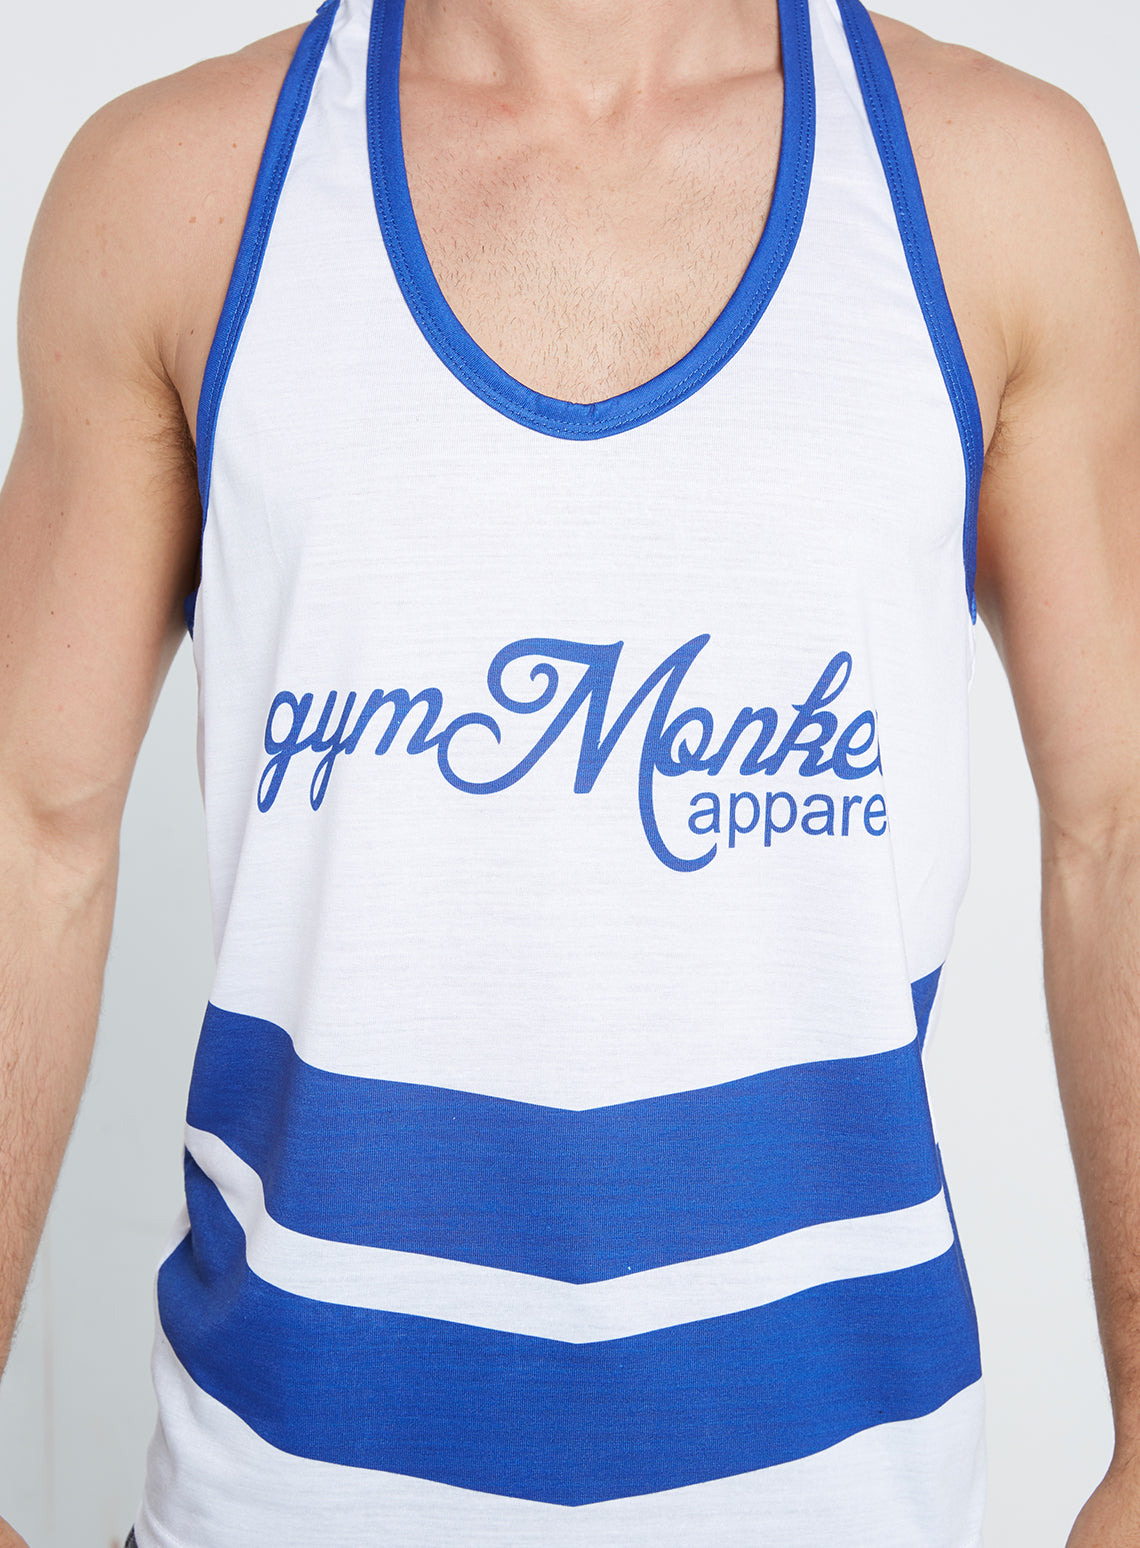 967560646af66 Gym Monkee - Blue and White Sublimated Vest CHEST